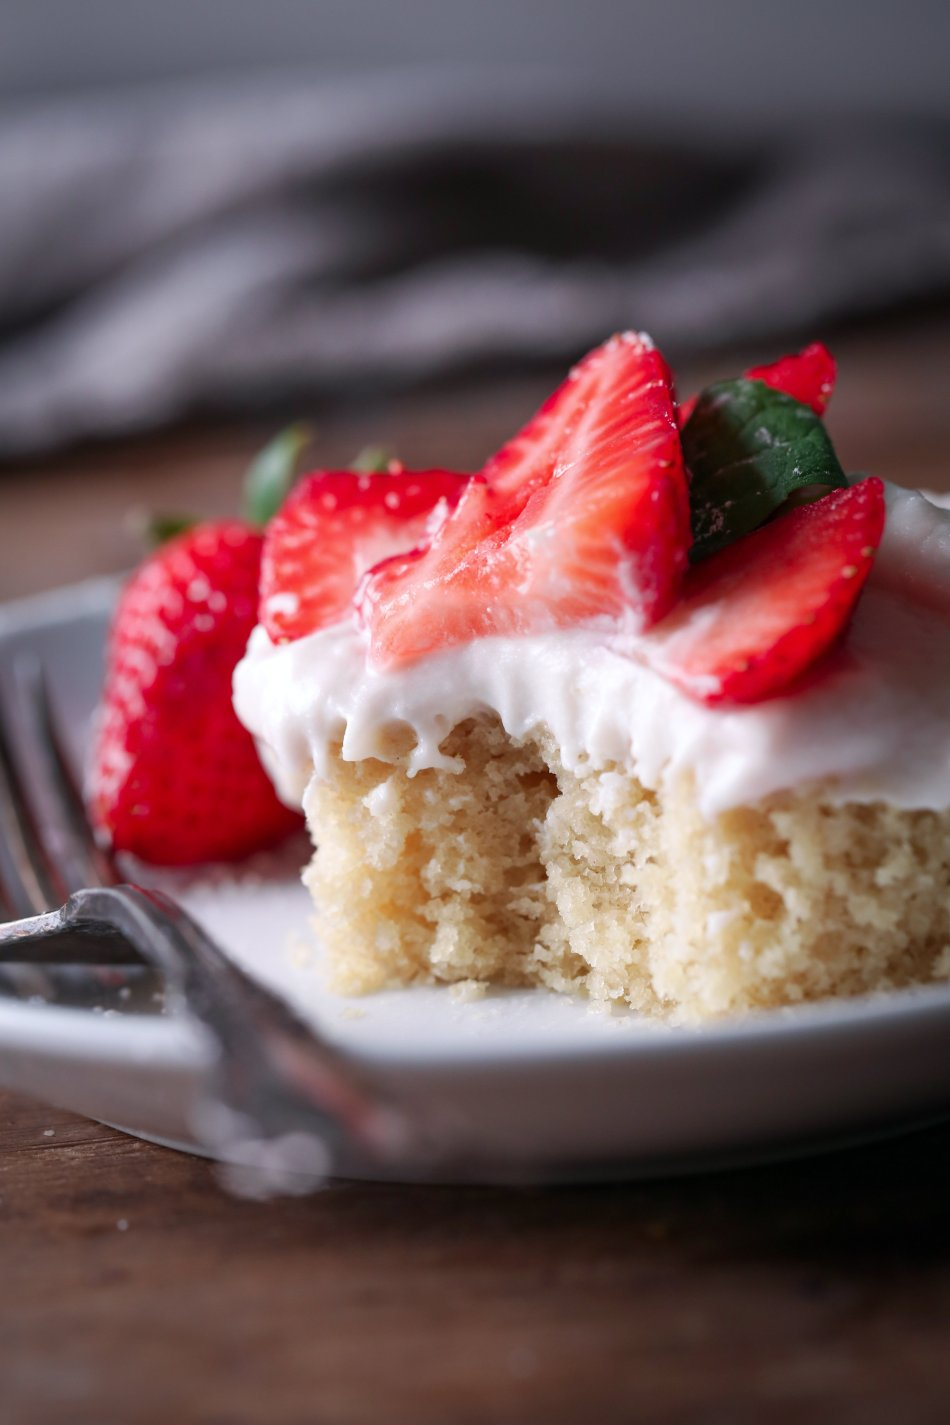 Vegan Vanilla Sheet Cake with Strawberries | Gluten and dairy free variation included. Vegan friendly.